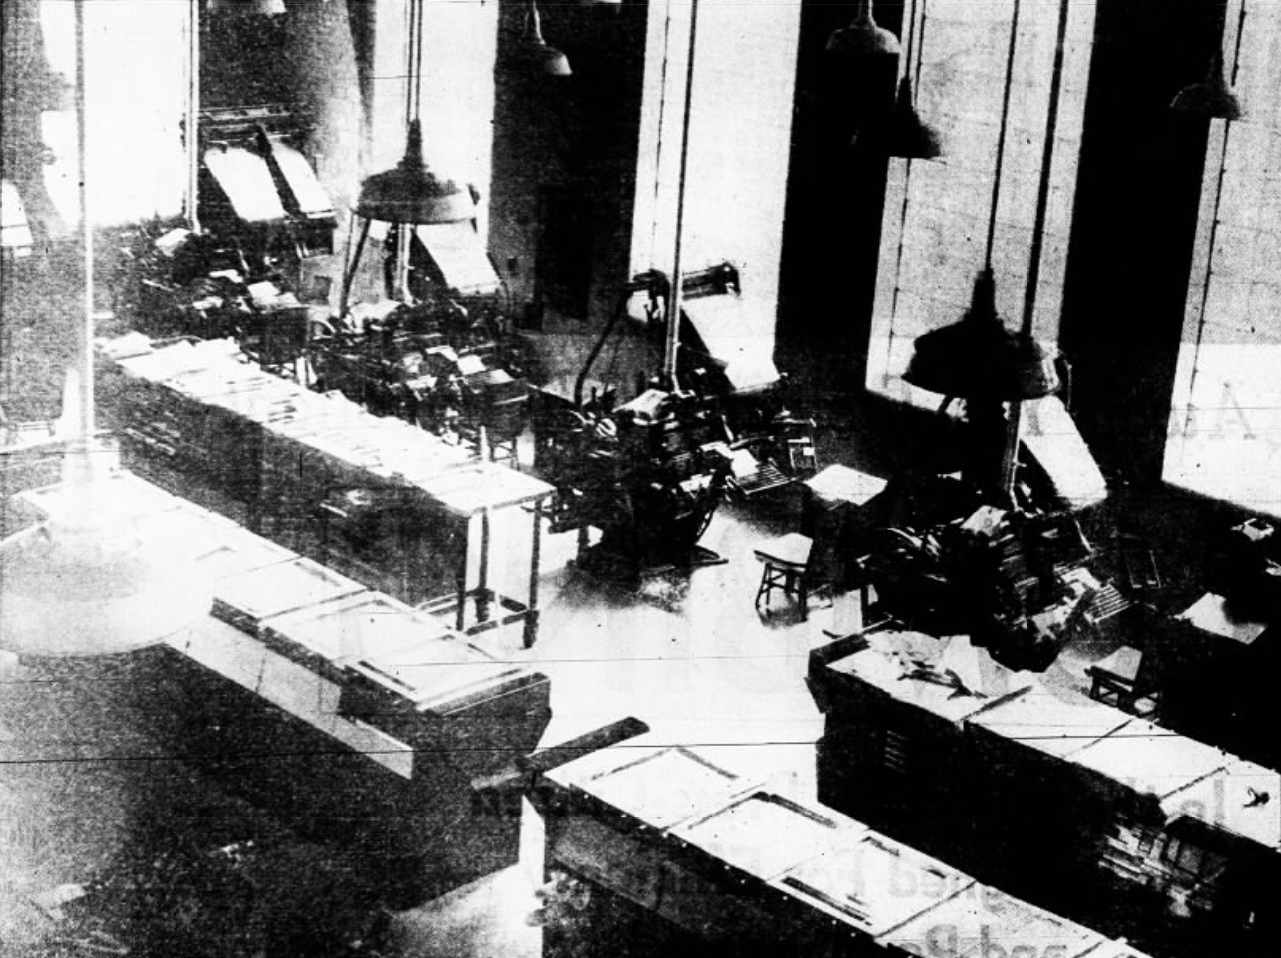 """This 1937 file photo originally was published with the caption, """"Through the lookout, perhaps the most interesting place in the new Press-Citizen building to the visitor is the vantage point on the balcony above the lobby where, through large soundproof windows, he may watch the north wall of the shop and look out on the top of the press. When the mechanical department is in full operation, the visitor may watch the speed and accurate precision which characterizes the work in this room and get a bird's eye view of the co-ordination of all the professes through which news must go from the time it leaves the editorial room until it appears on the printed page, ready for the reader,"""" at the Press-Citizen offices on Washington Street in Iowa City, Iowa."""